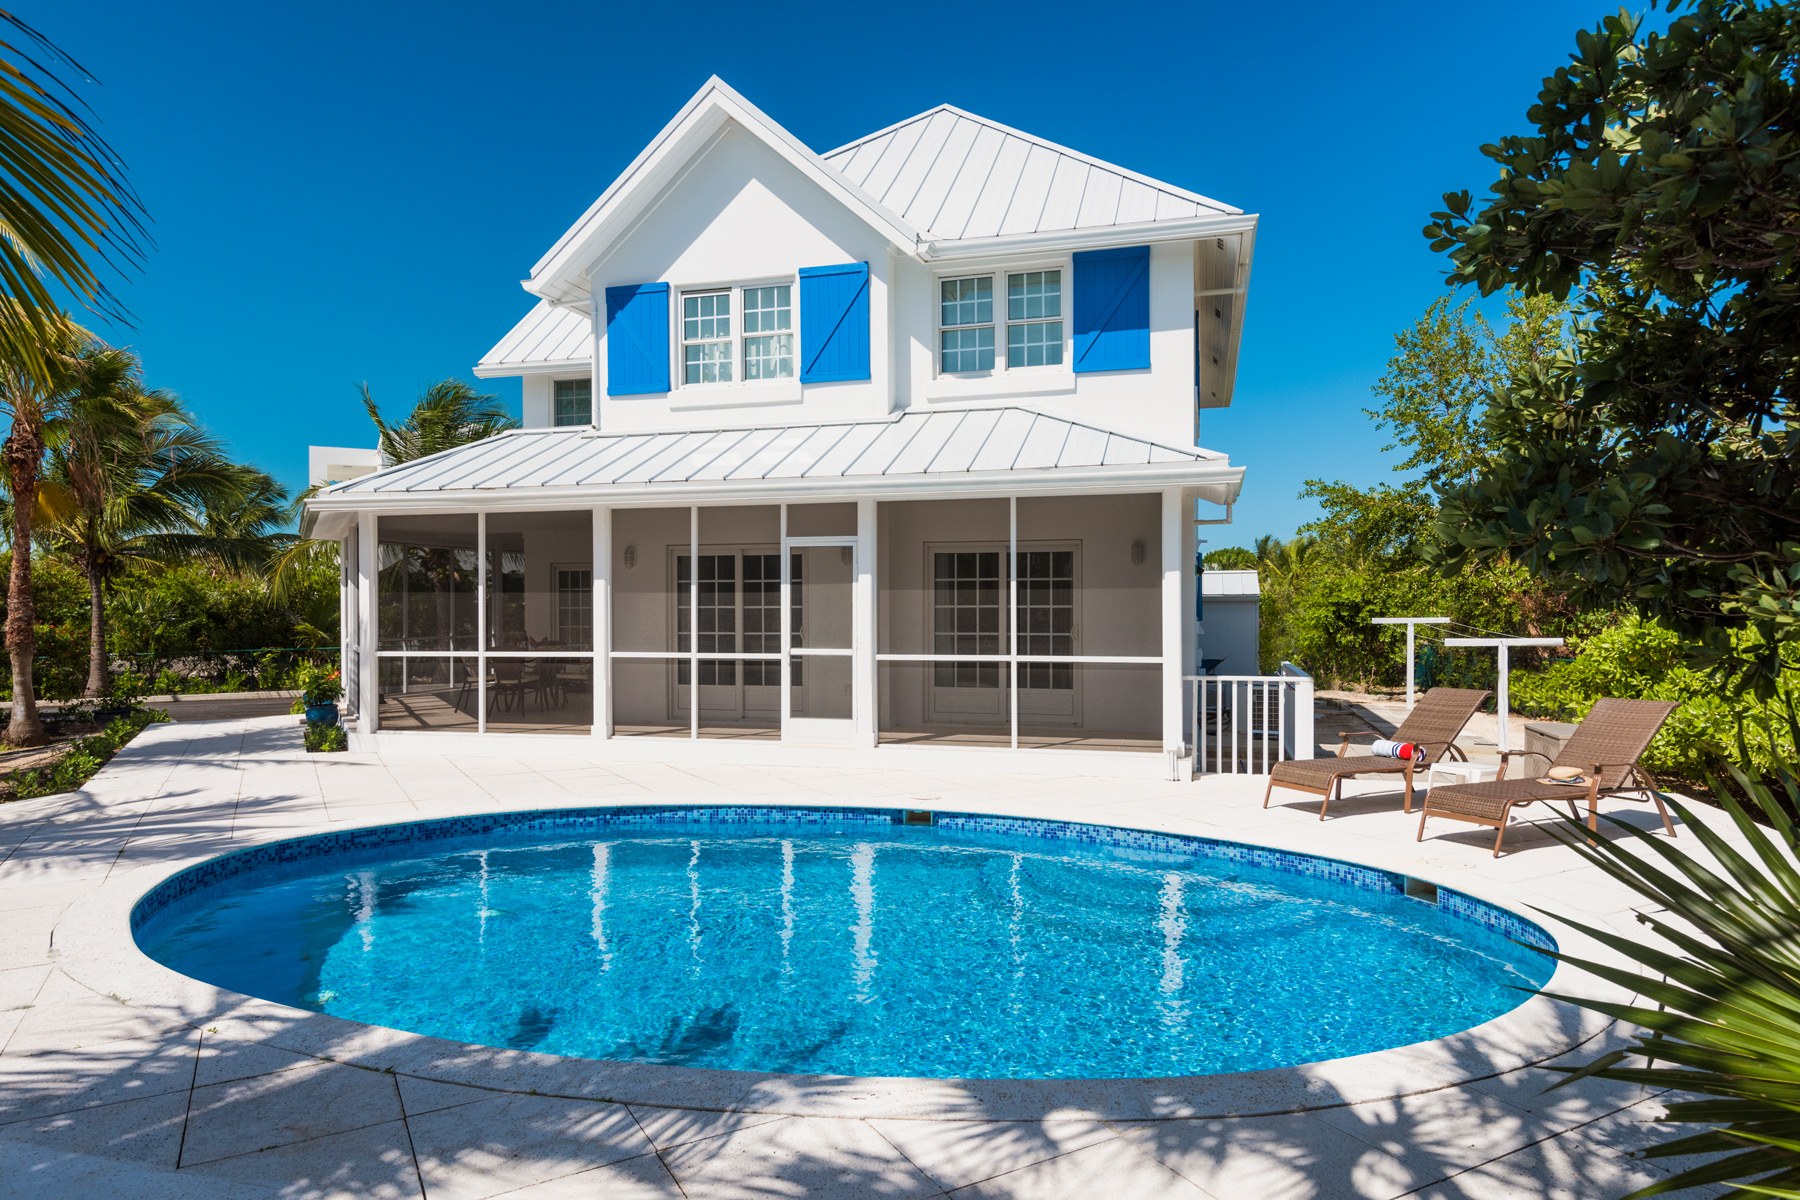 Single Family Home for Sale at SUNNYSIDE Leeward Green Court Leeward, Providenciales TKCA 1ZZ Turks And Caicos Islands